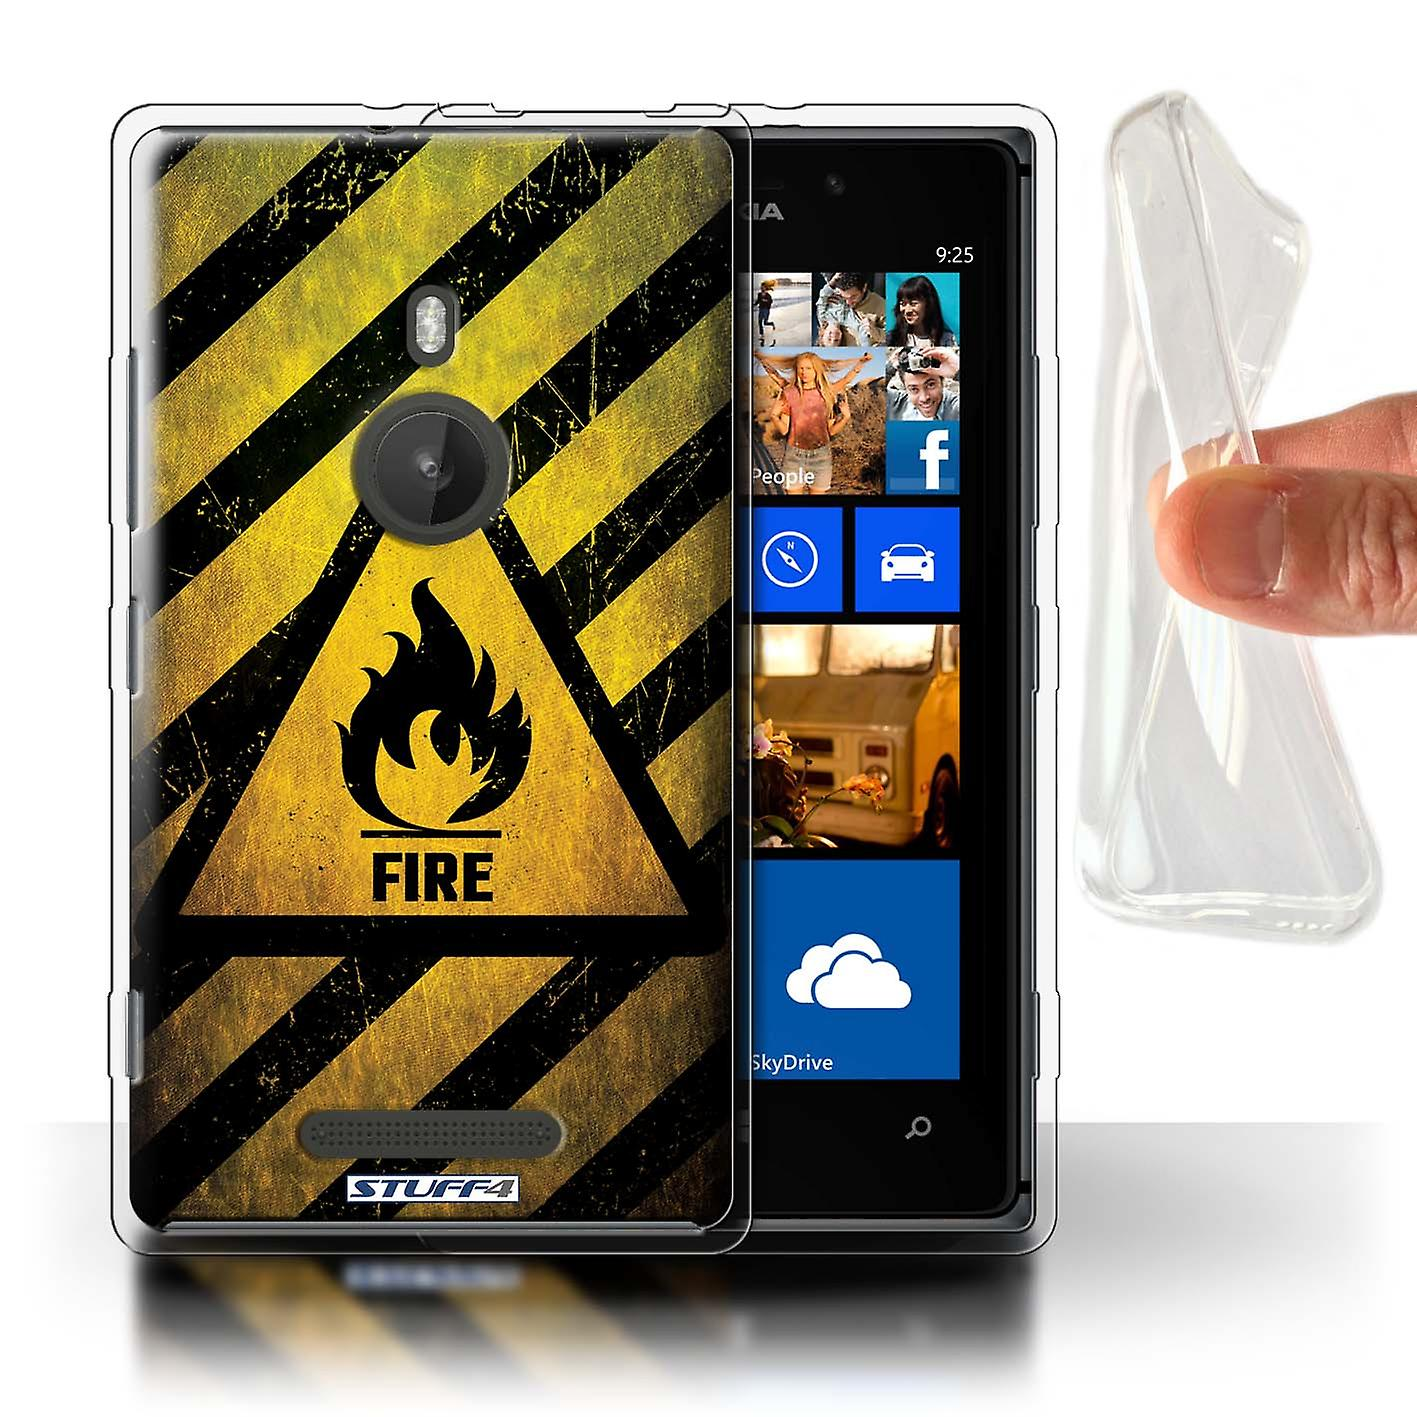 STUFF4 Gel TPU Case/Cover for Nokia Lumia 925/Fire/Flammable/Hazard Warning Signs